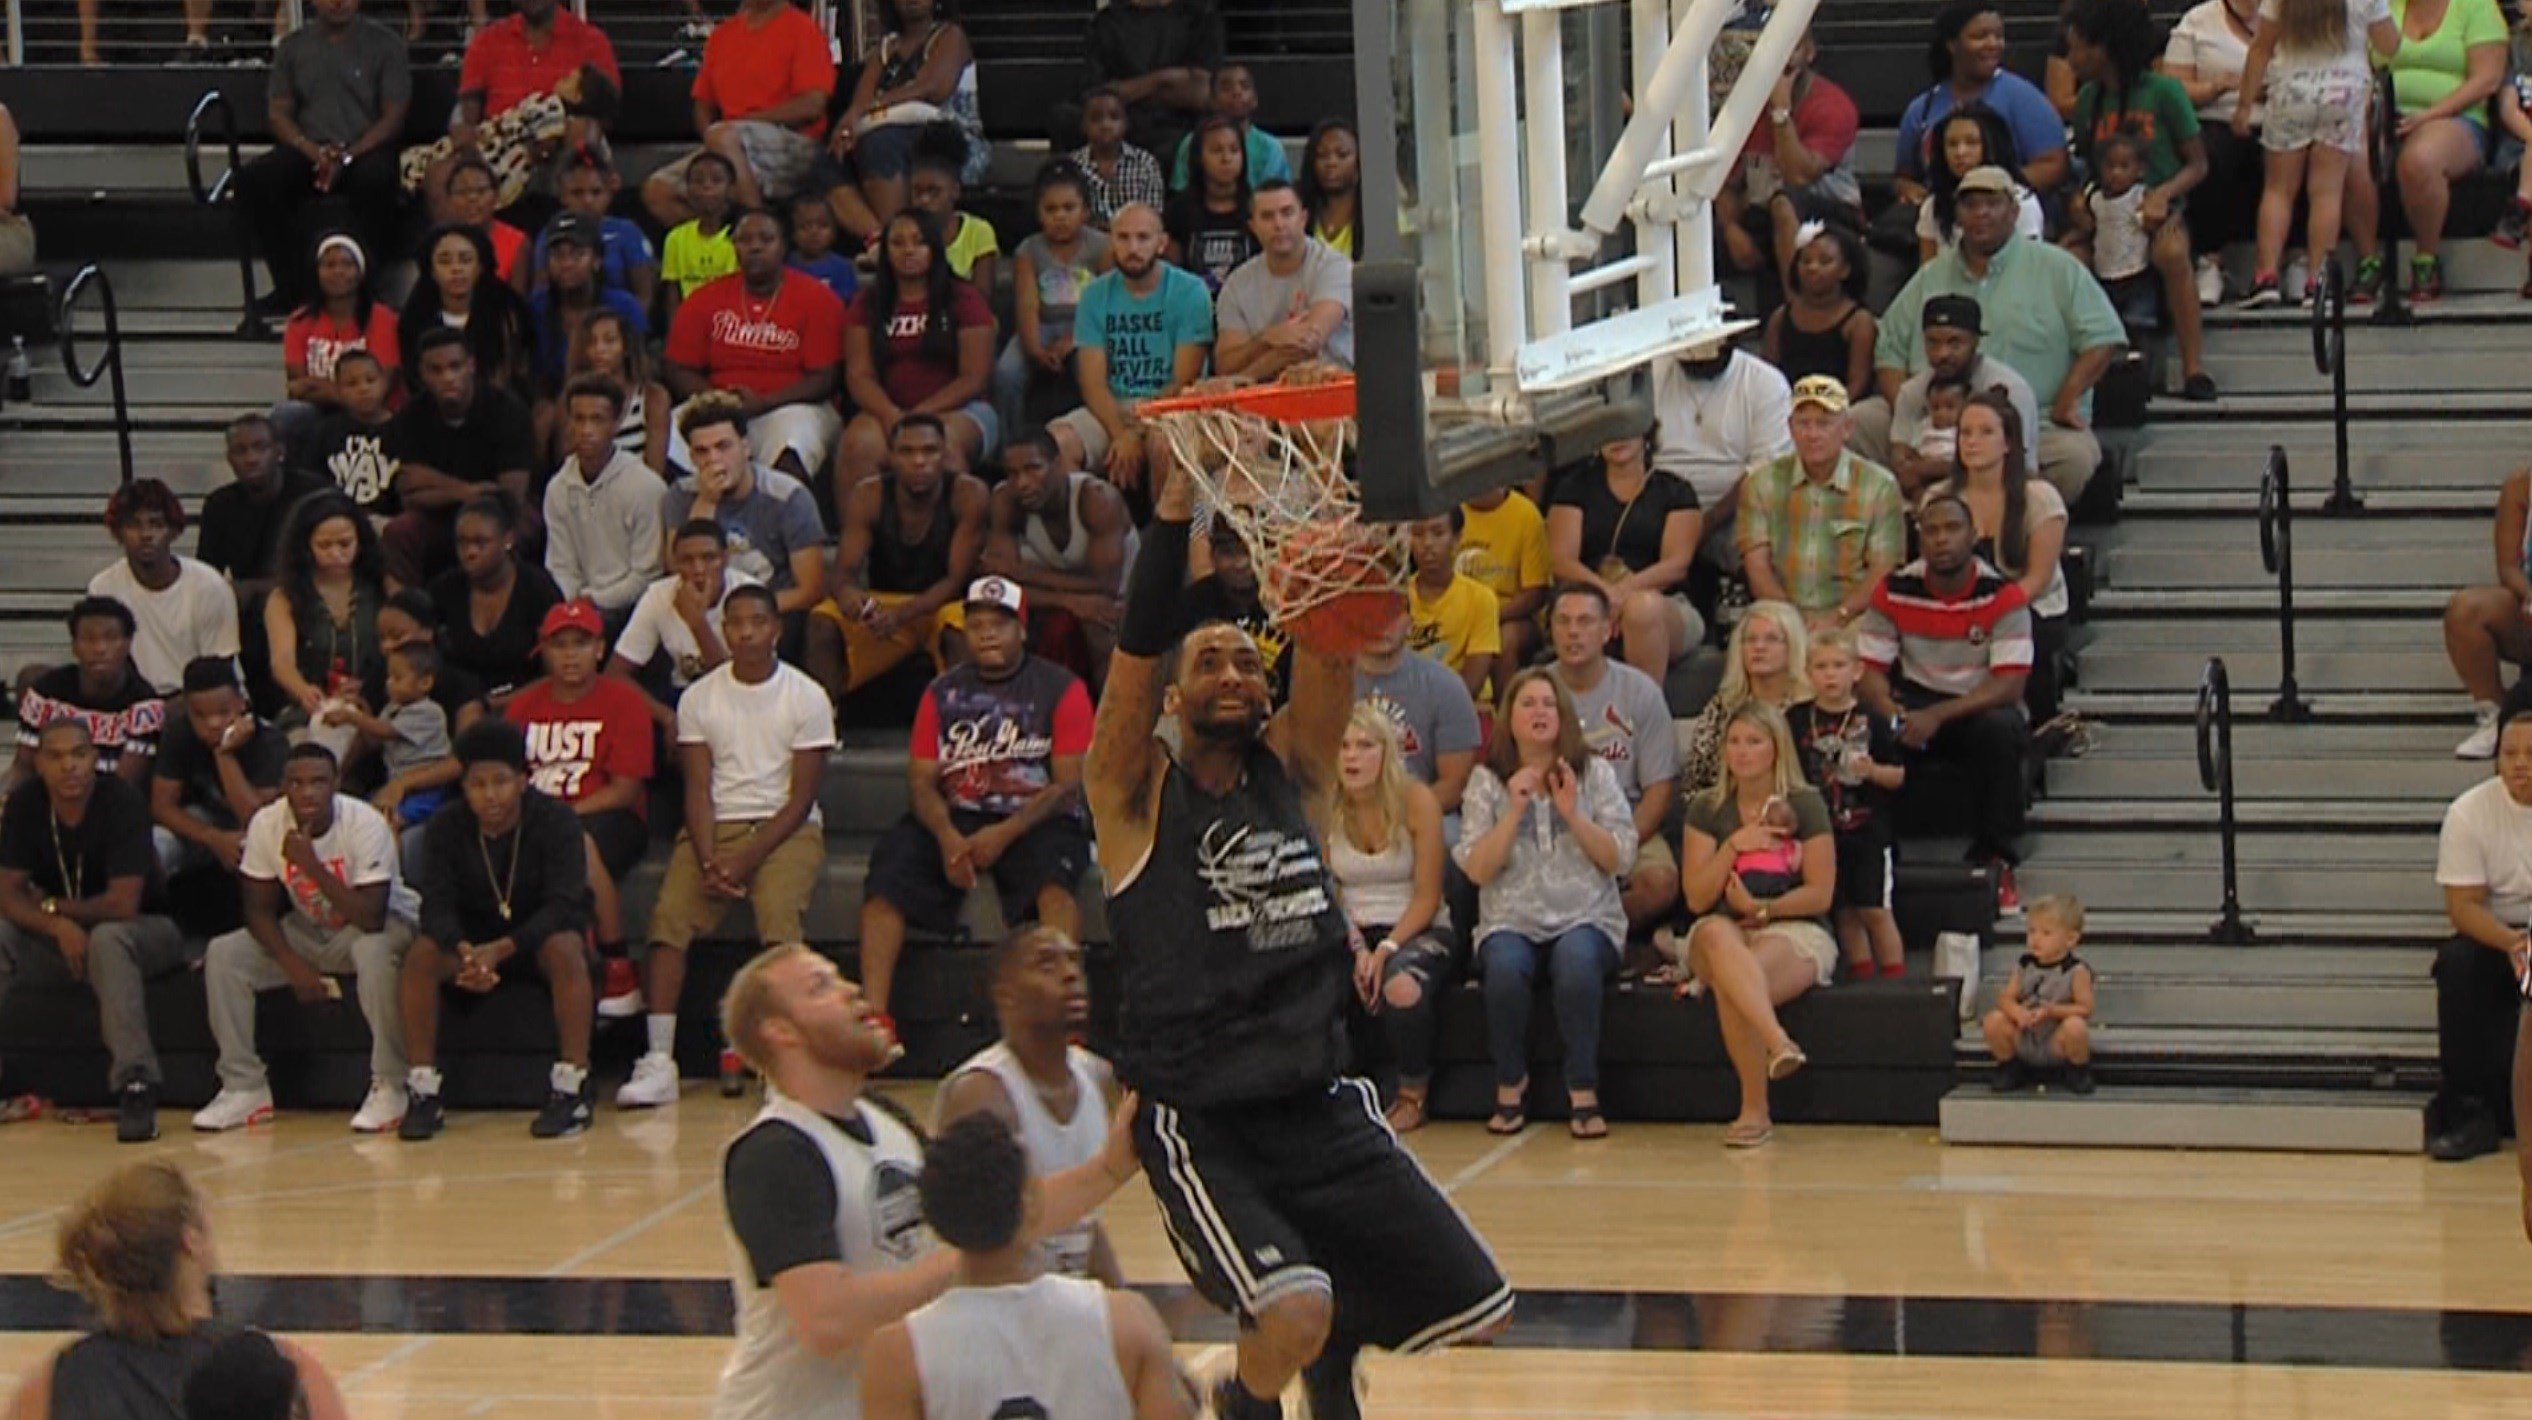 Jeremy Robinson slams it home during the inaugural Back 2 School Classic